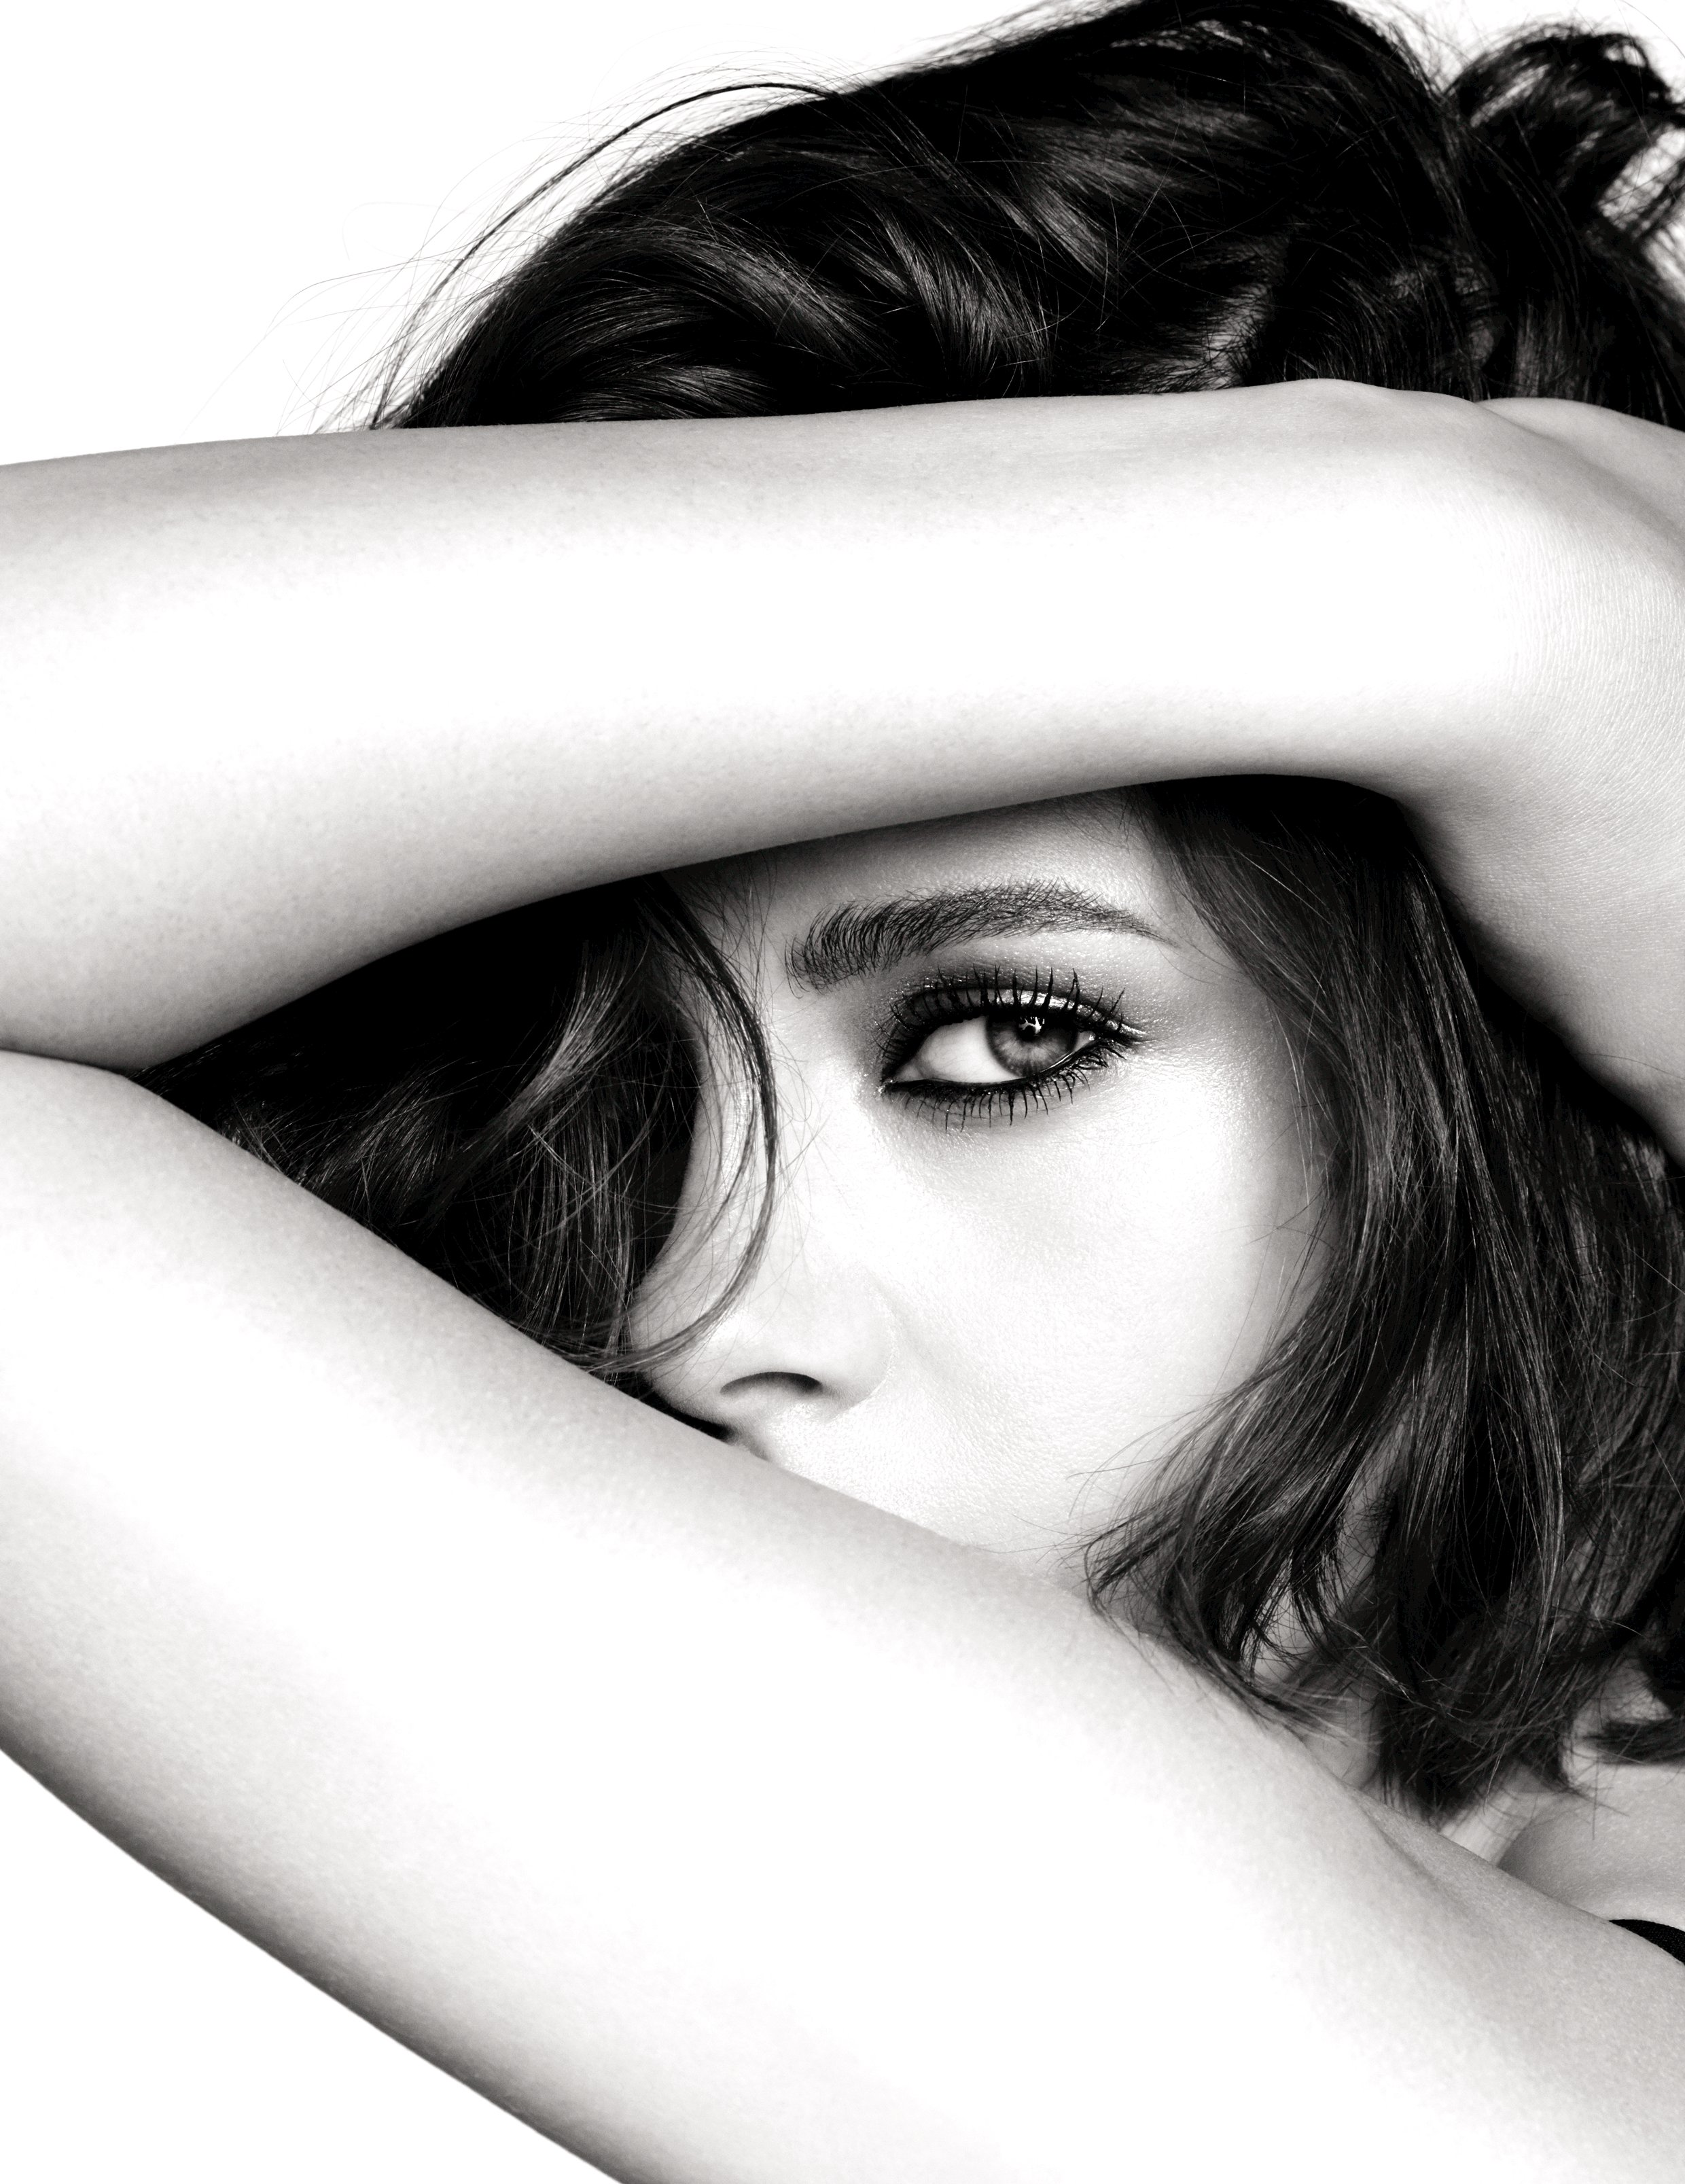 KRISTEN STEWART IS THE NEW FACE OF CHANEL MAKE UP